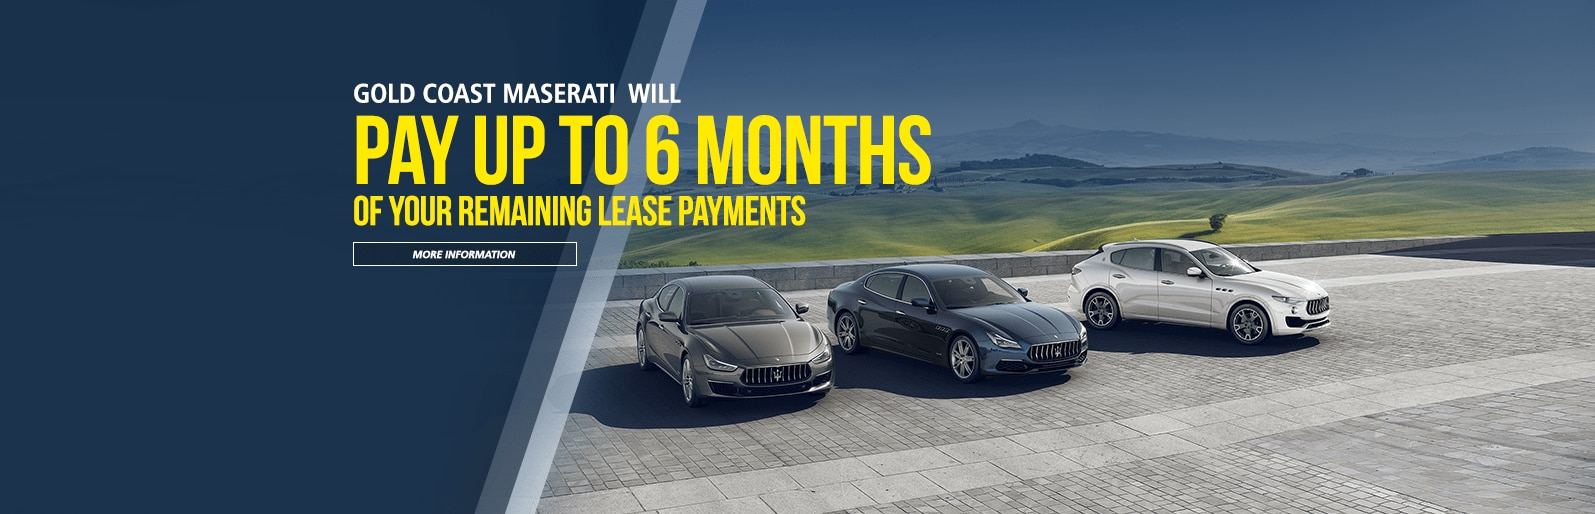 New Pre Owned Luxury Cars At Gold Coast Maserati In Ny